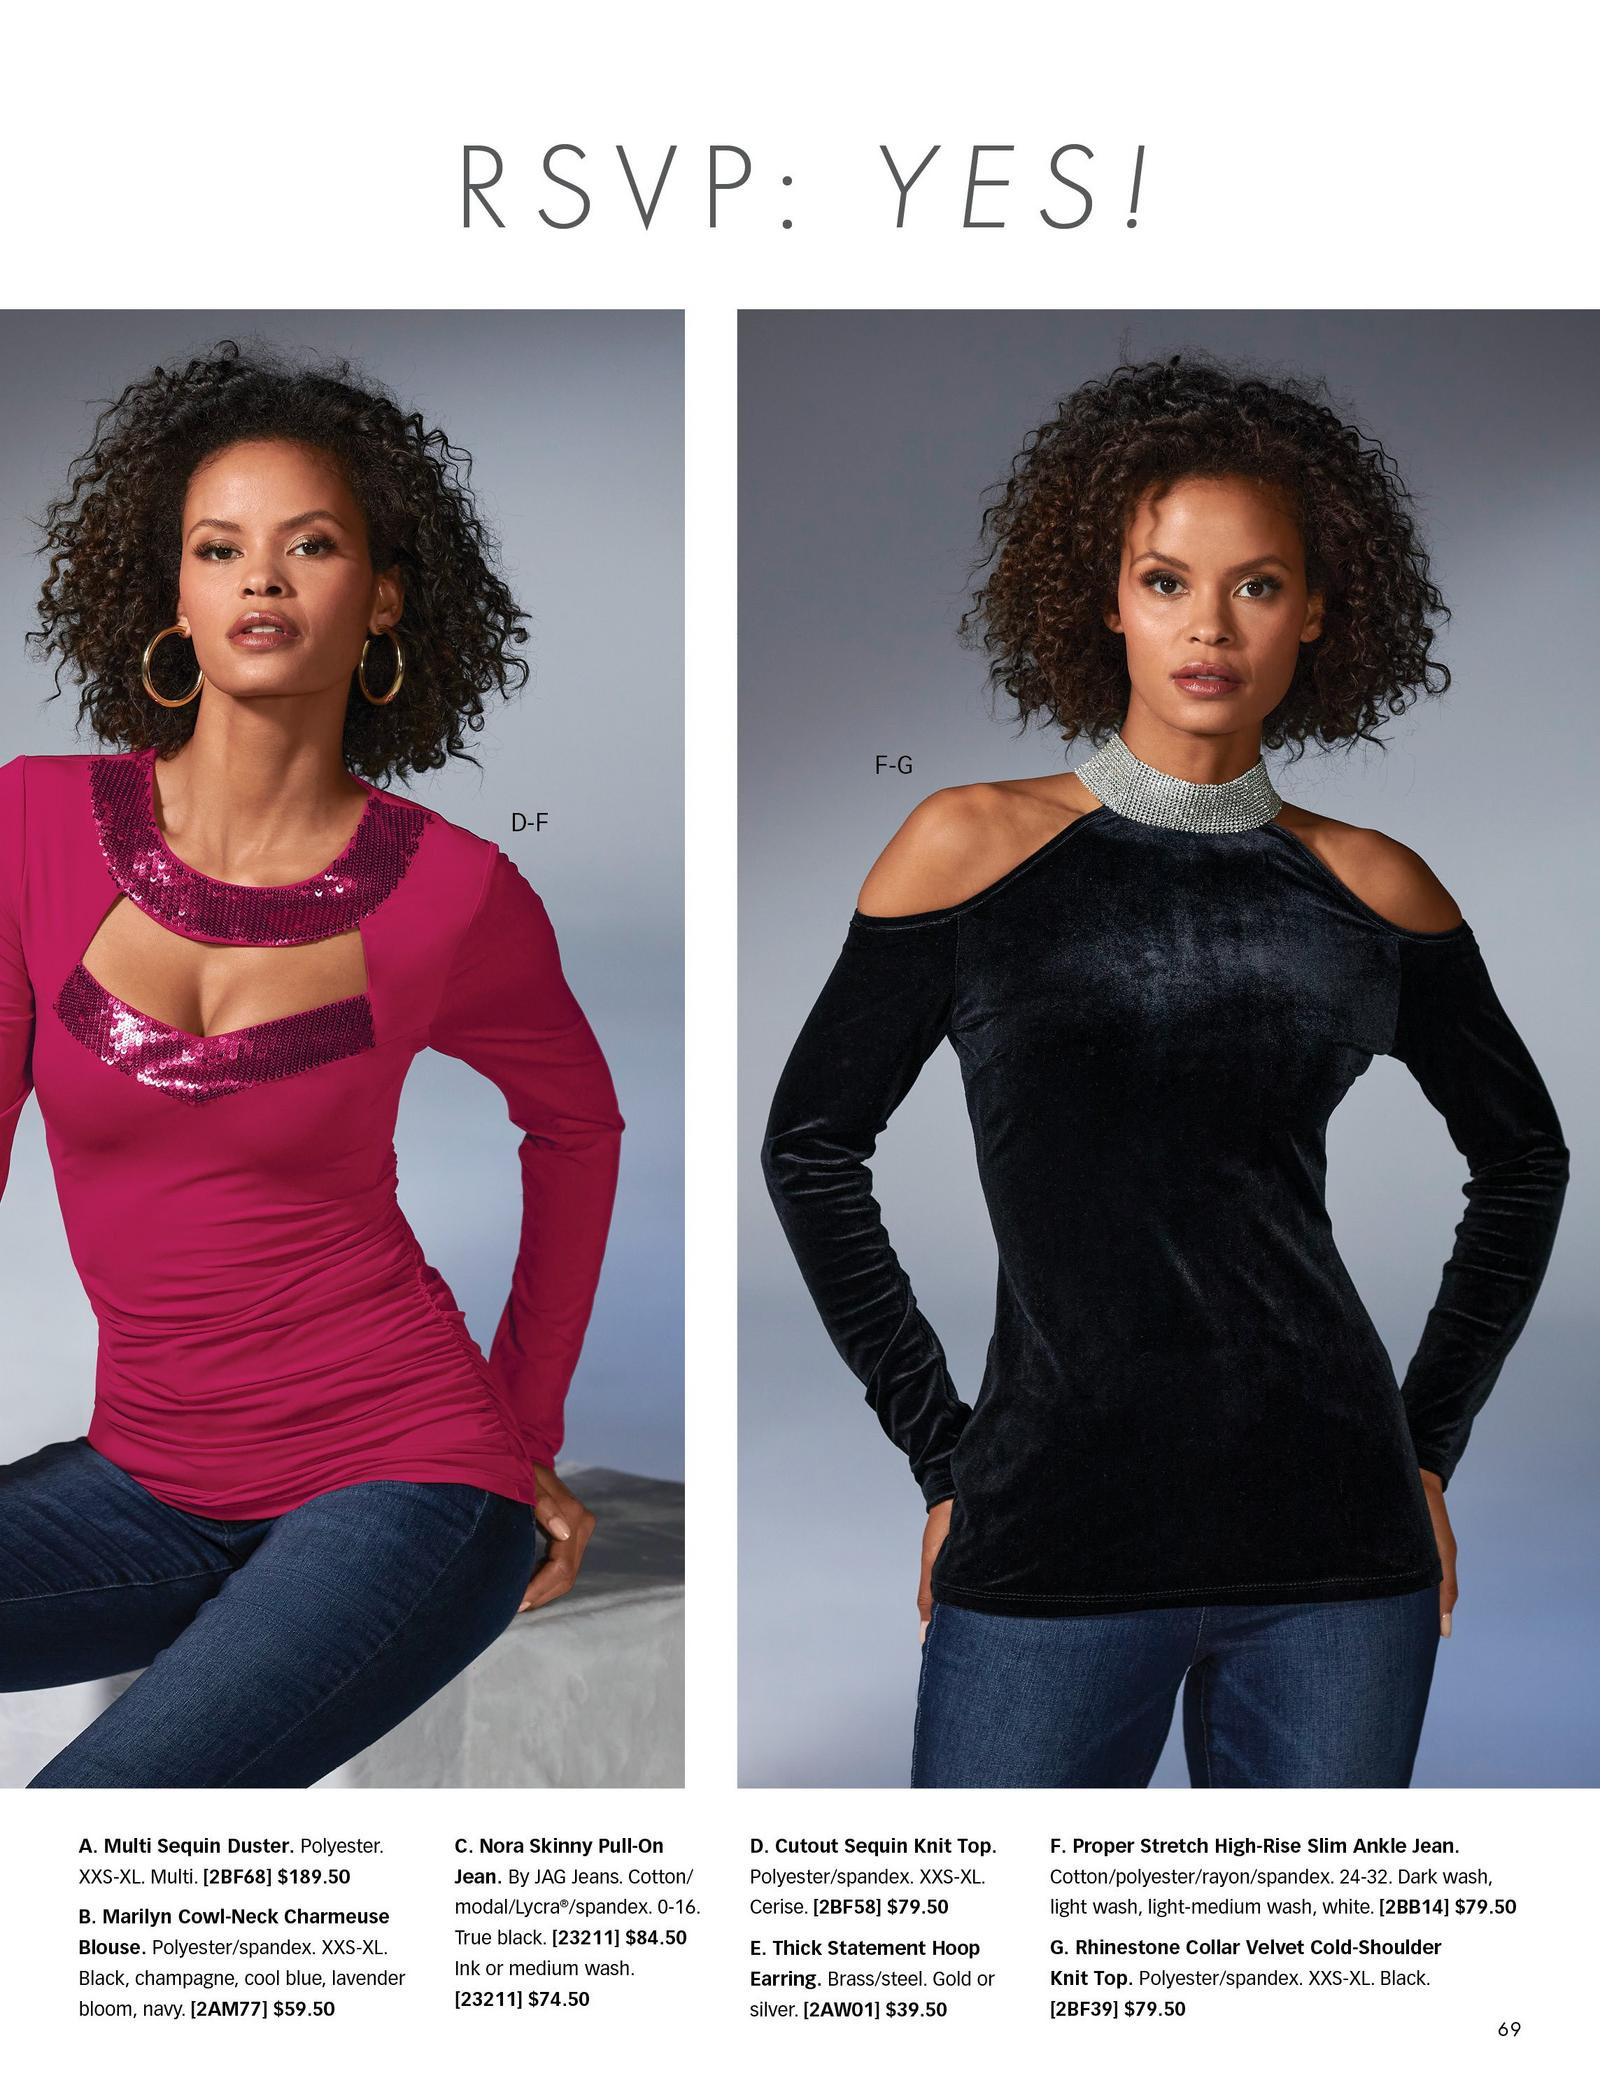 left model wearing a wine colored cutout long-sleeve top with sequin embellishments and jeans. right model wearing a black velvet cold-shoulder long-sleeve top with a rhinestone mock-neck and jeans.